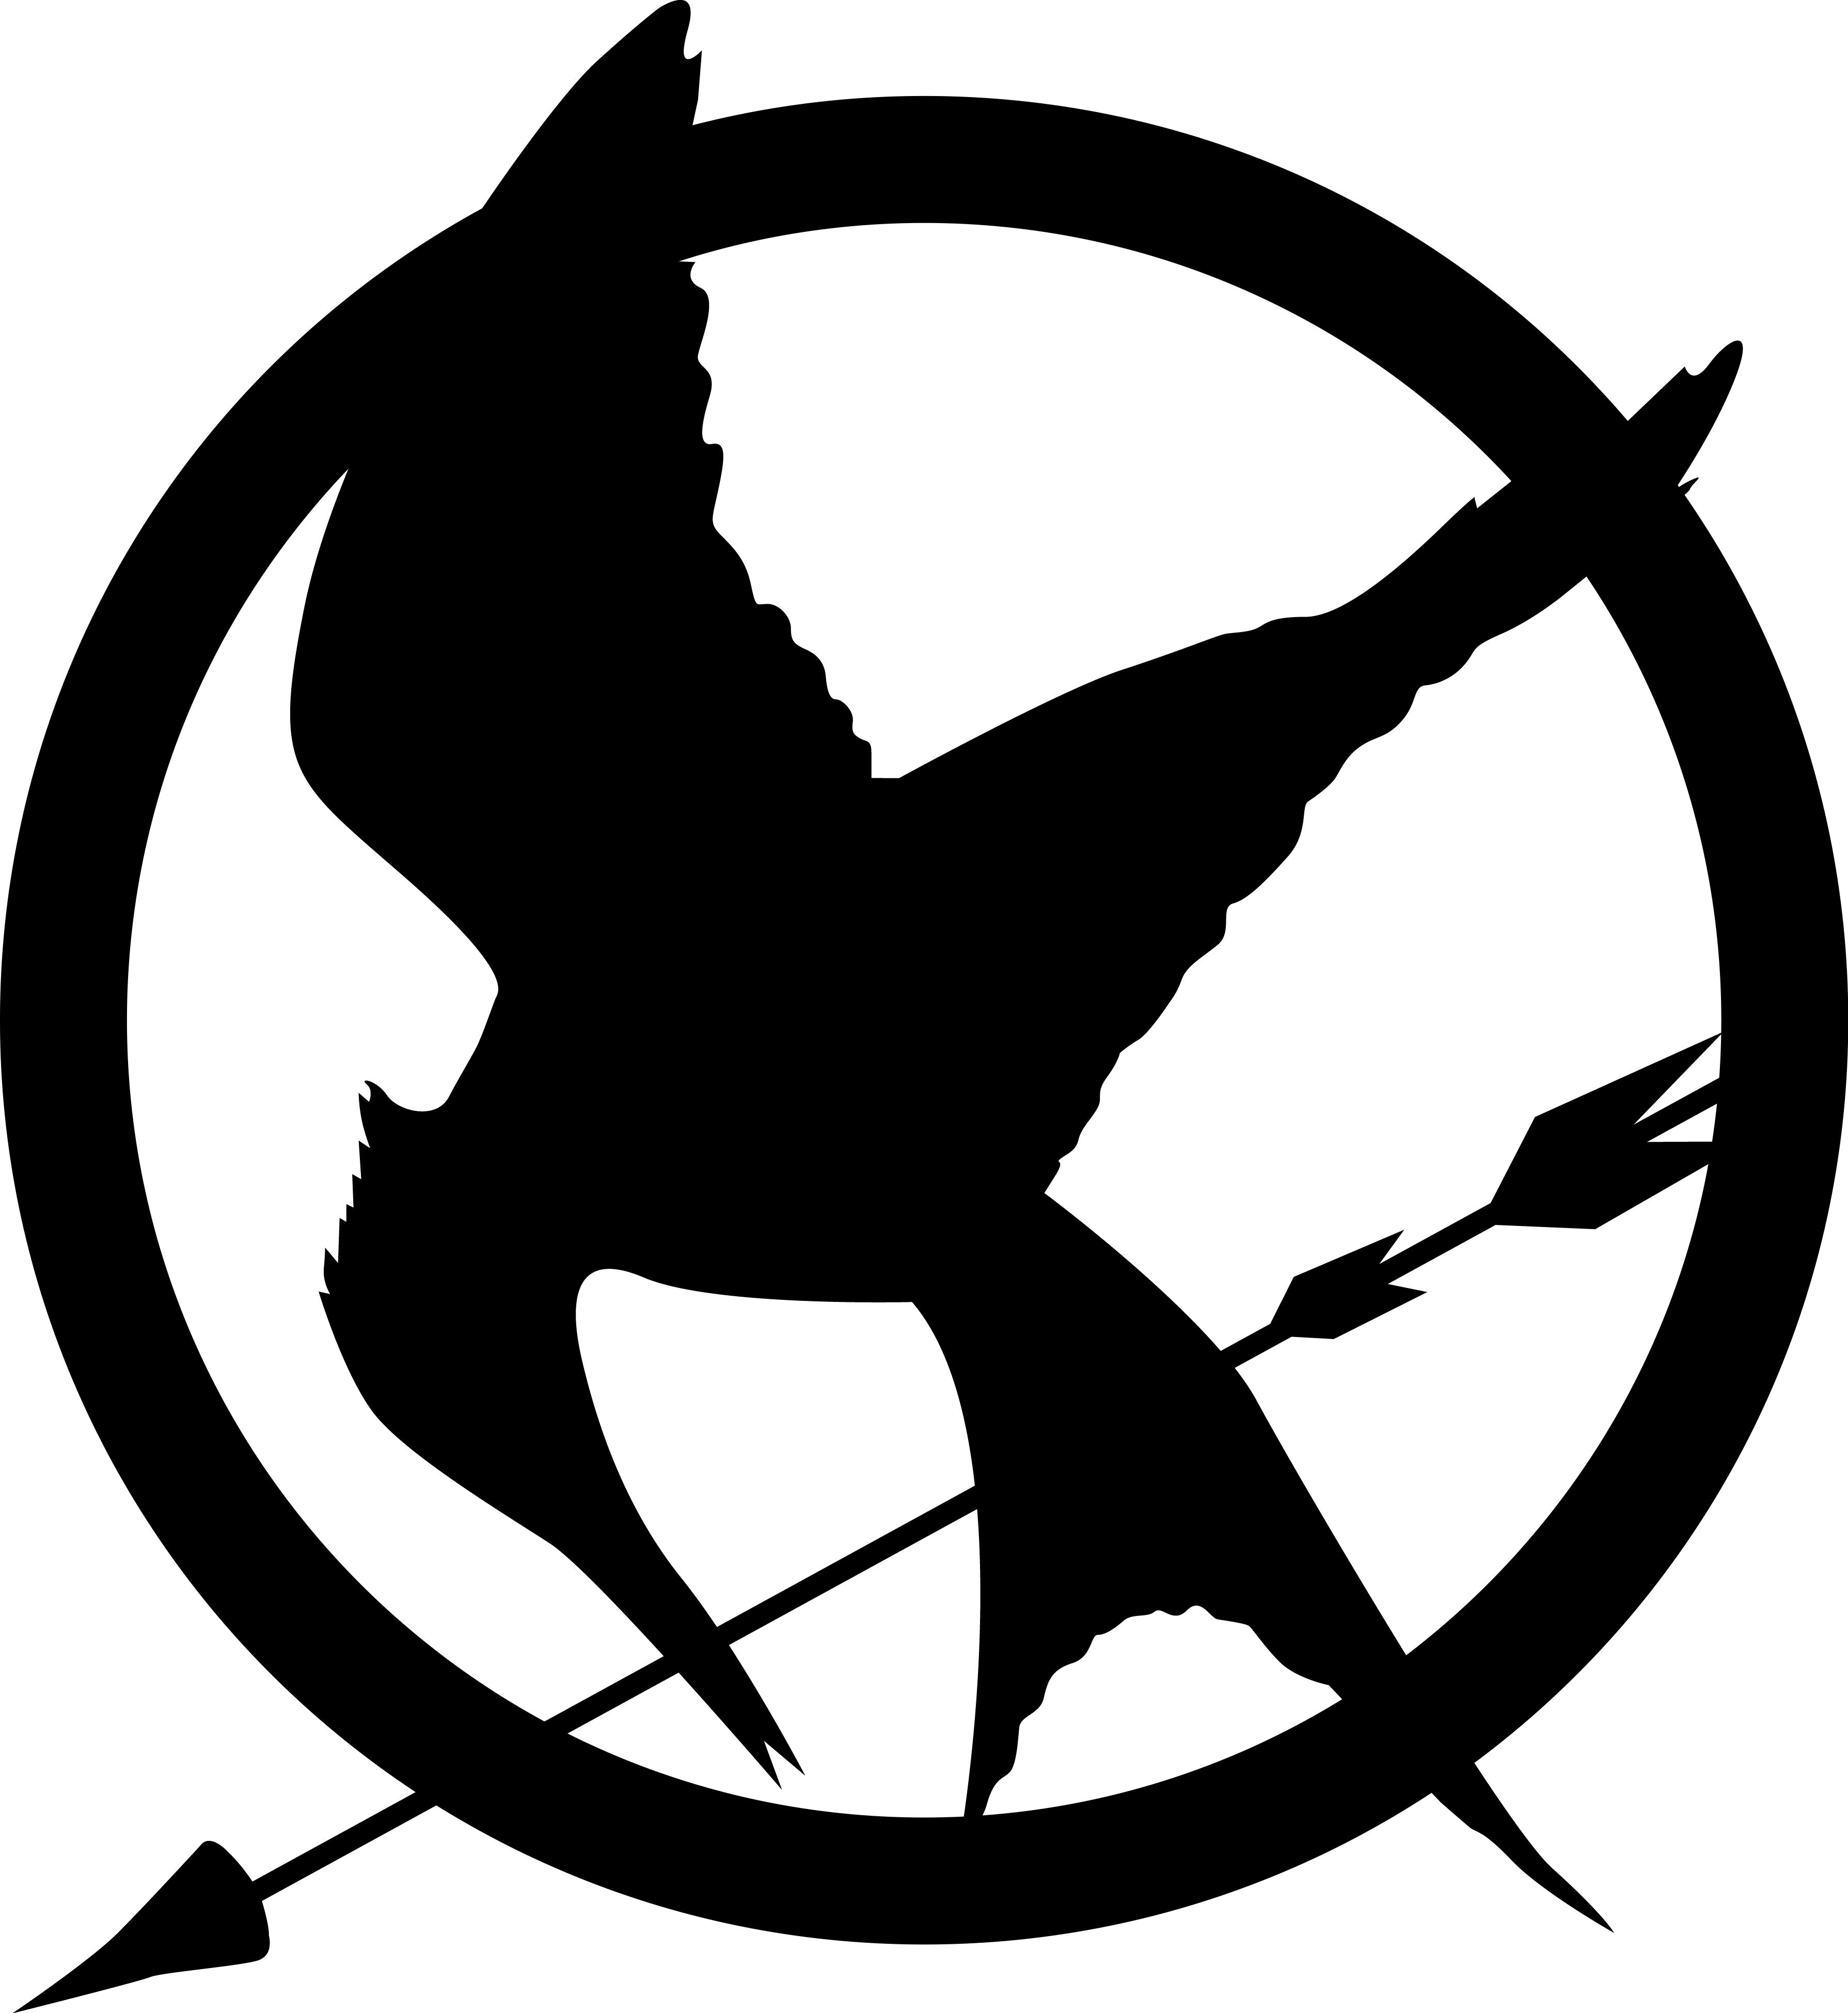 Hunger Games District 12 Seal Capitol seal by trebory6 Hunger Games Capitol Seal Vector